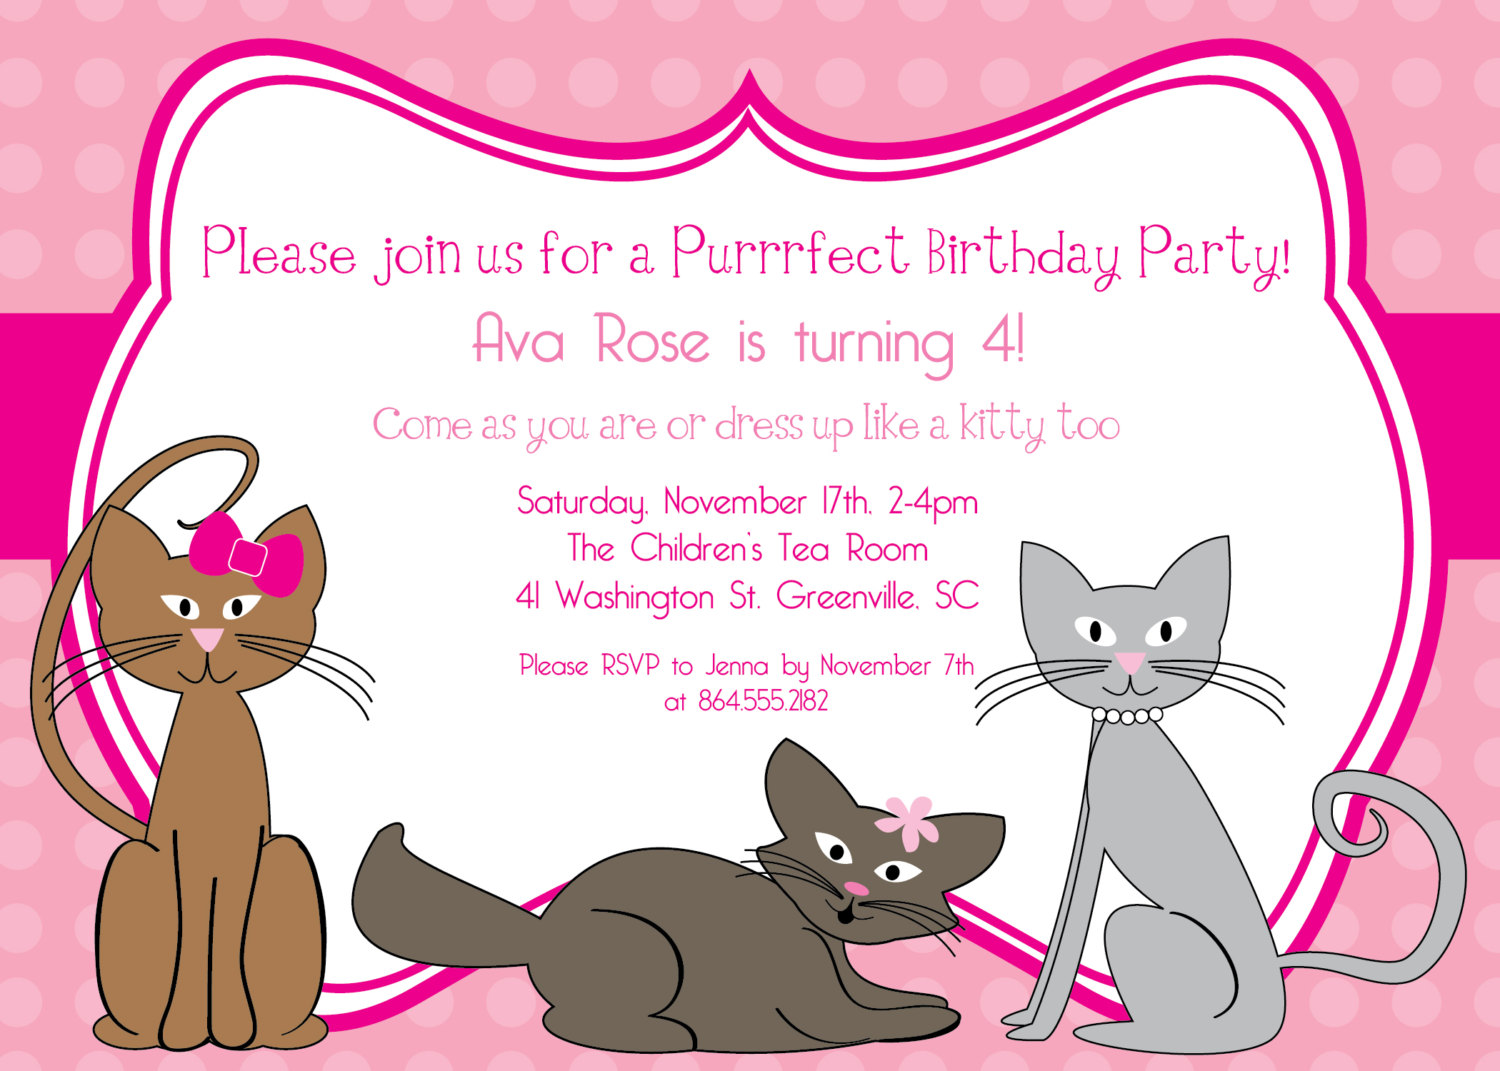 Kitty cat birthday invitation kitten kitties pink polka dots kitty cat birthday invitation kitten kitties pink polka dots purrrfect filmwisefo Image collections